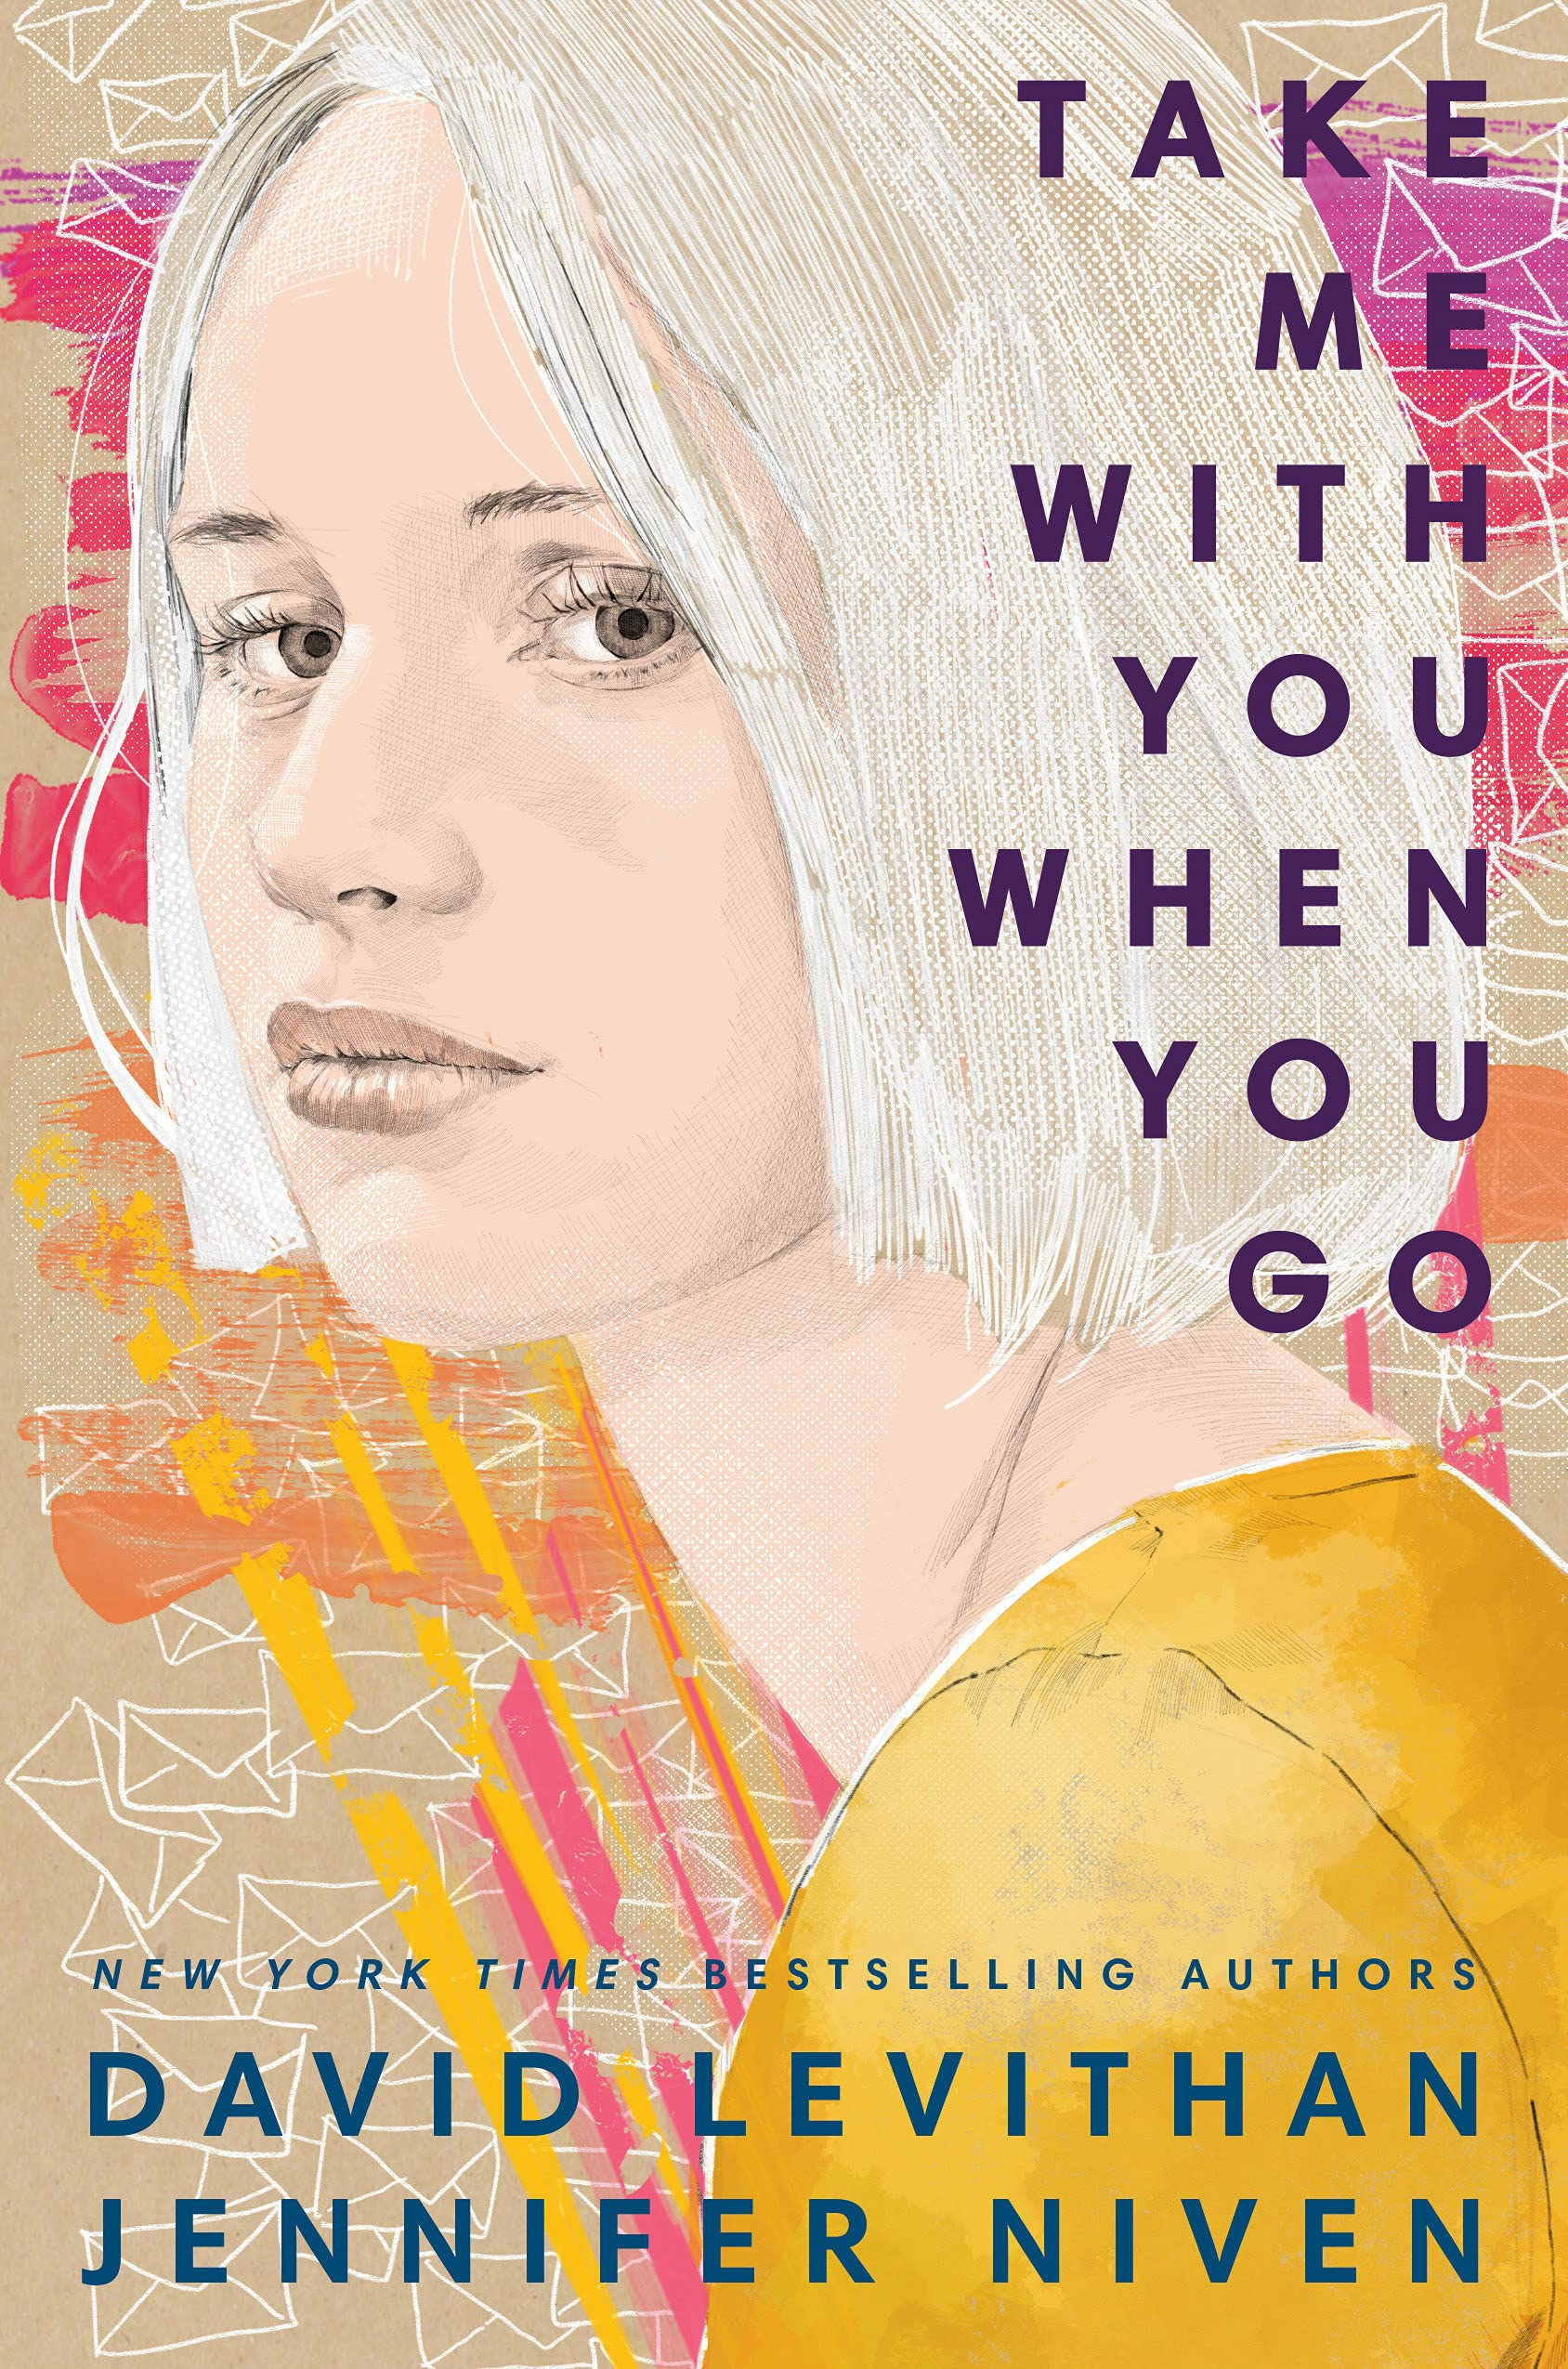 Take Me With You When You Go Release Date? David Levithan & Jennifer Niven 2021 New Releases